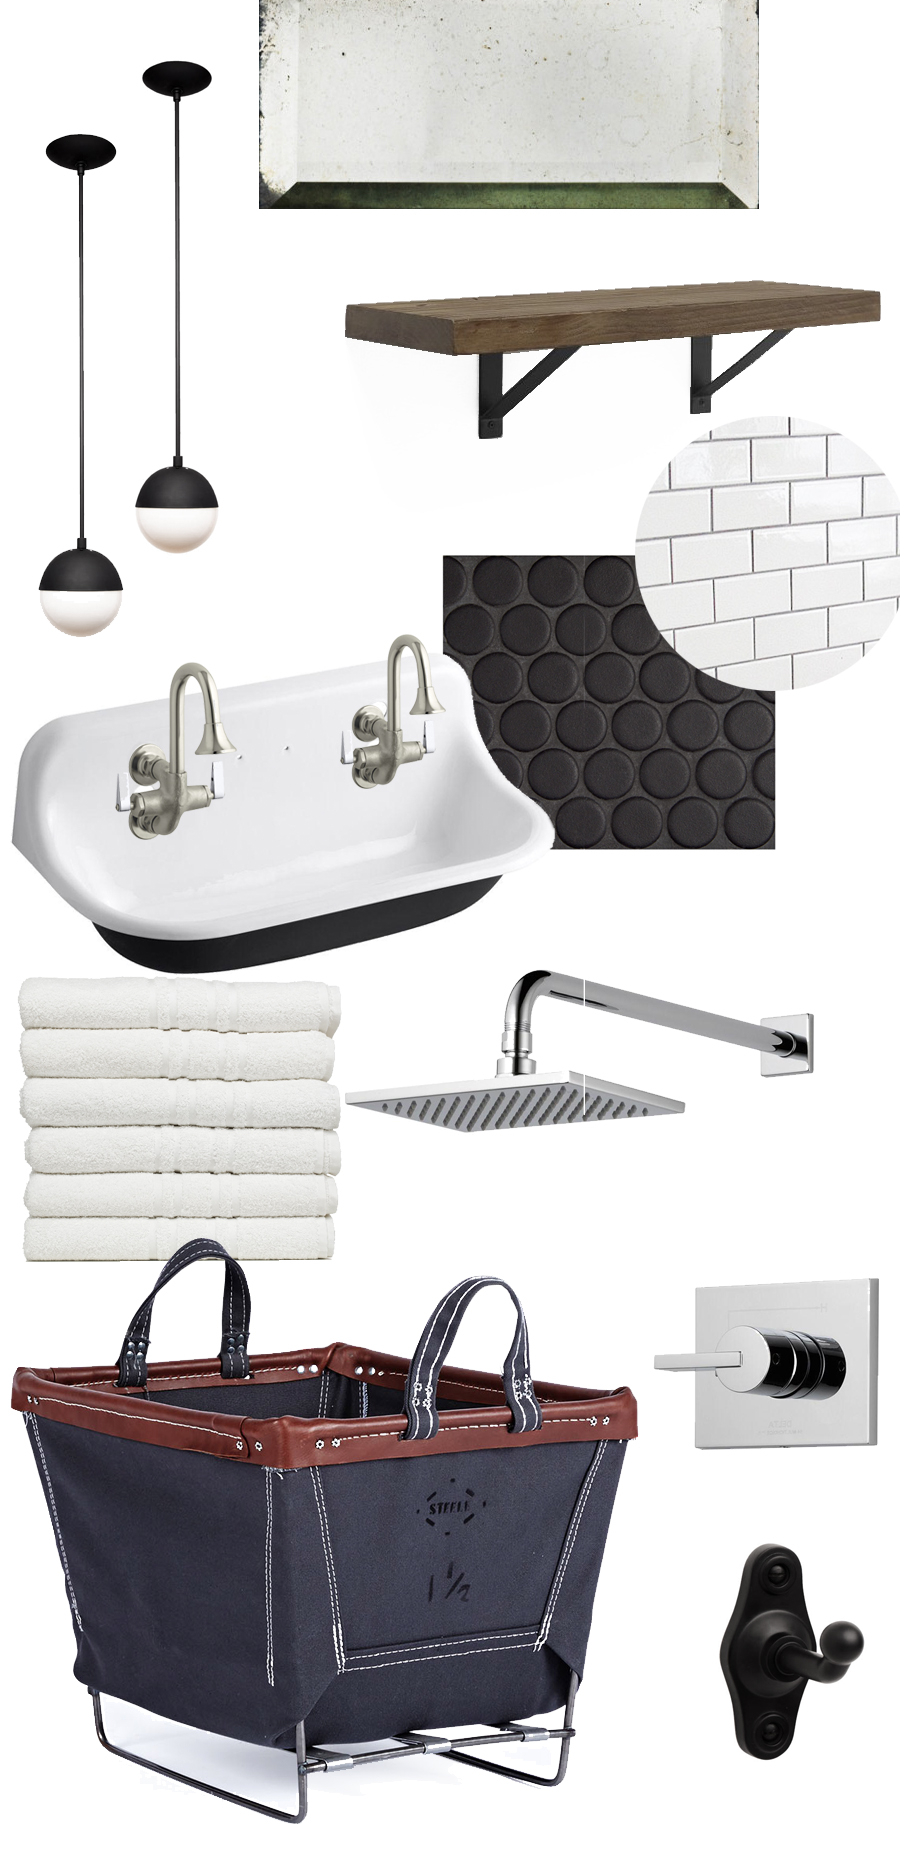 Creating a vintage/modern/industrial bathroom